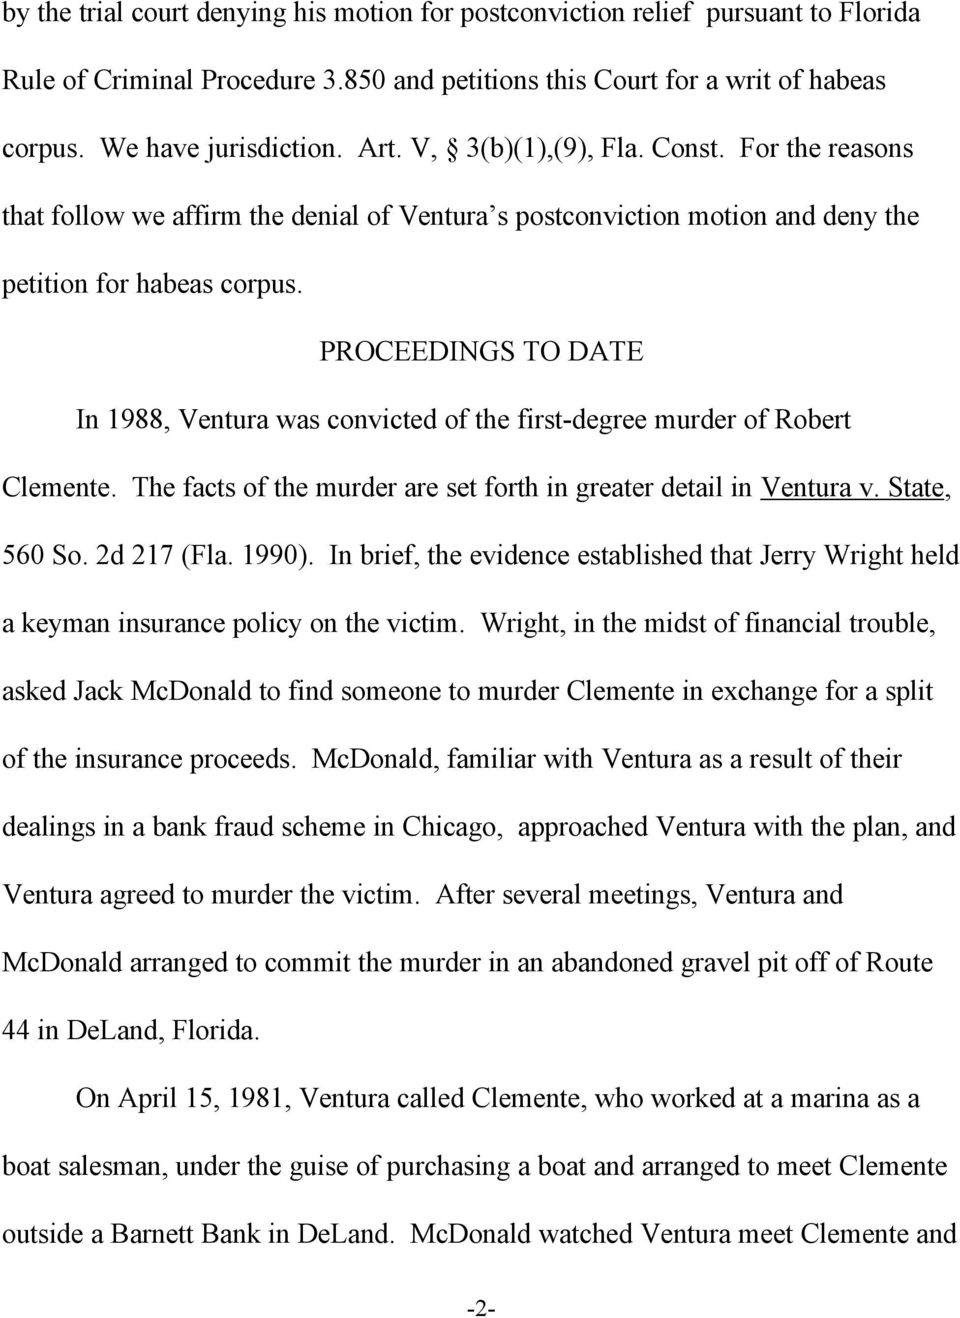 PROCEEDINGS TO DATE In 1988, Ventura was convicted of the first-degree murder of Robert Clemente. The facts of the murder are set forth in greater detail in Ventura v. State, 560 So. 2d 217 (Fla.